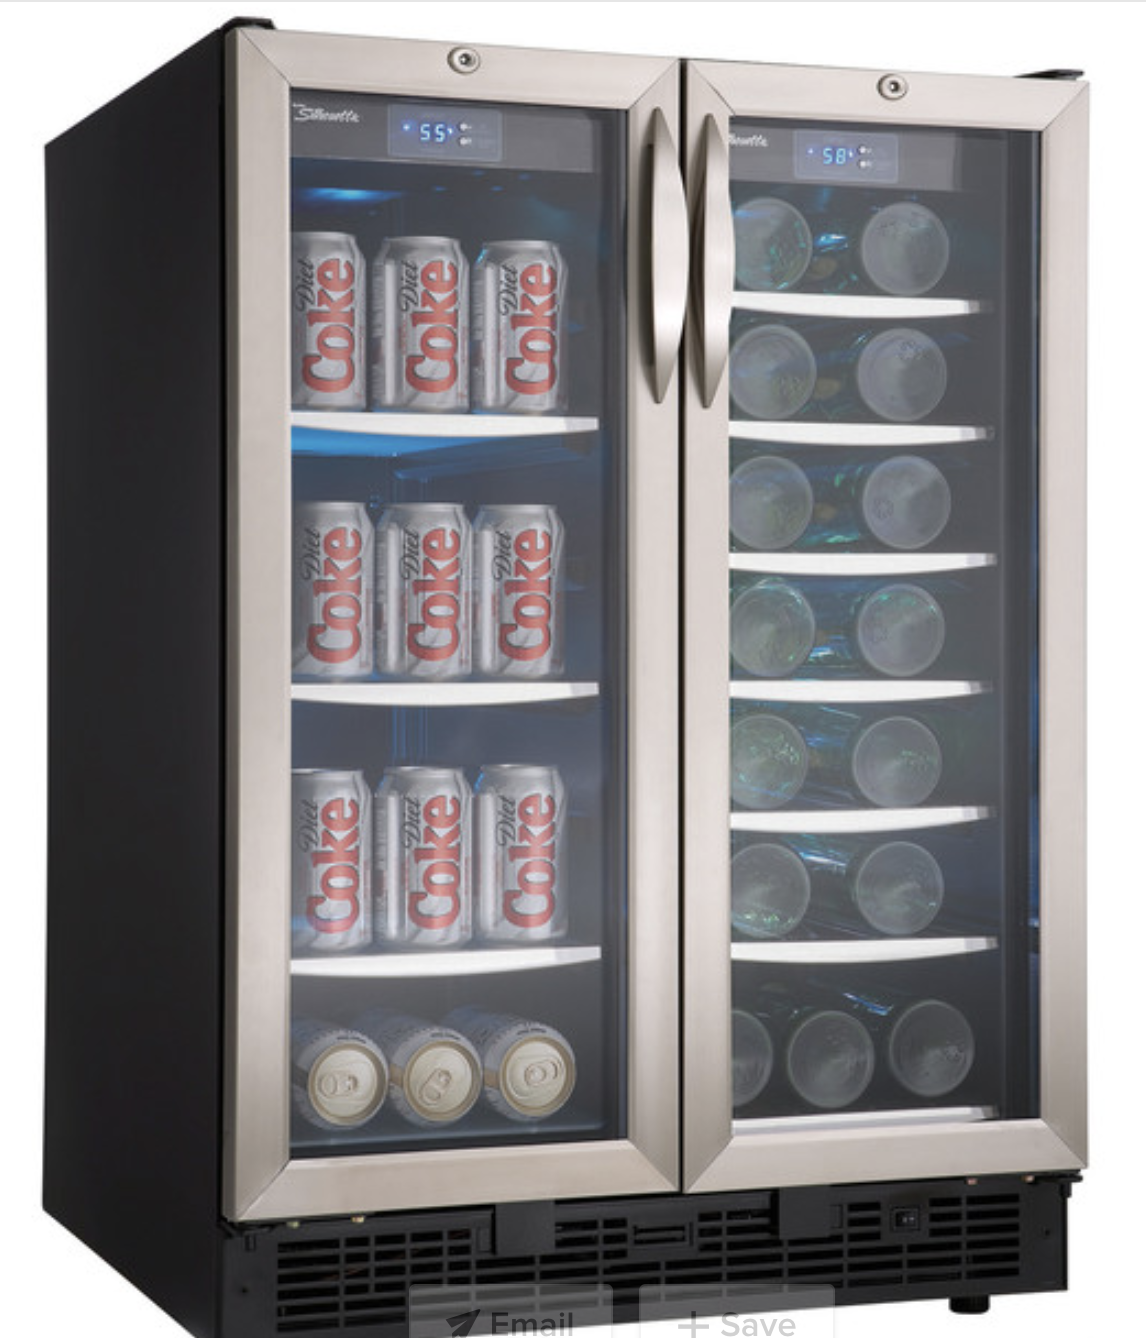 emmental-series-built-in-wine-cooler-stainless-steel